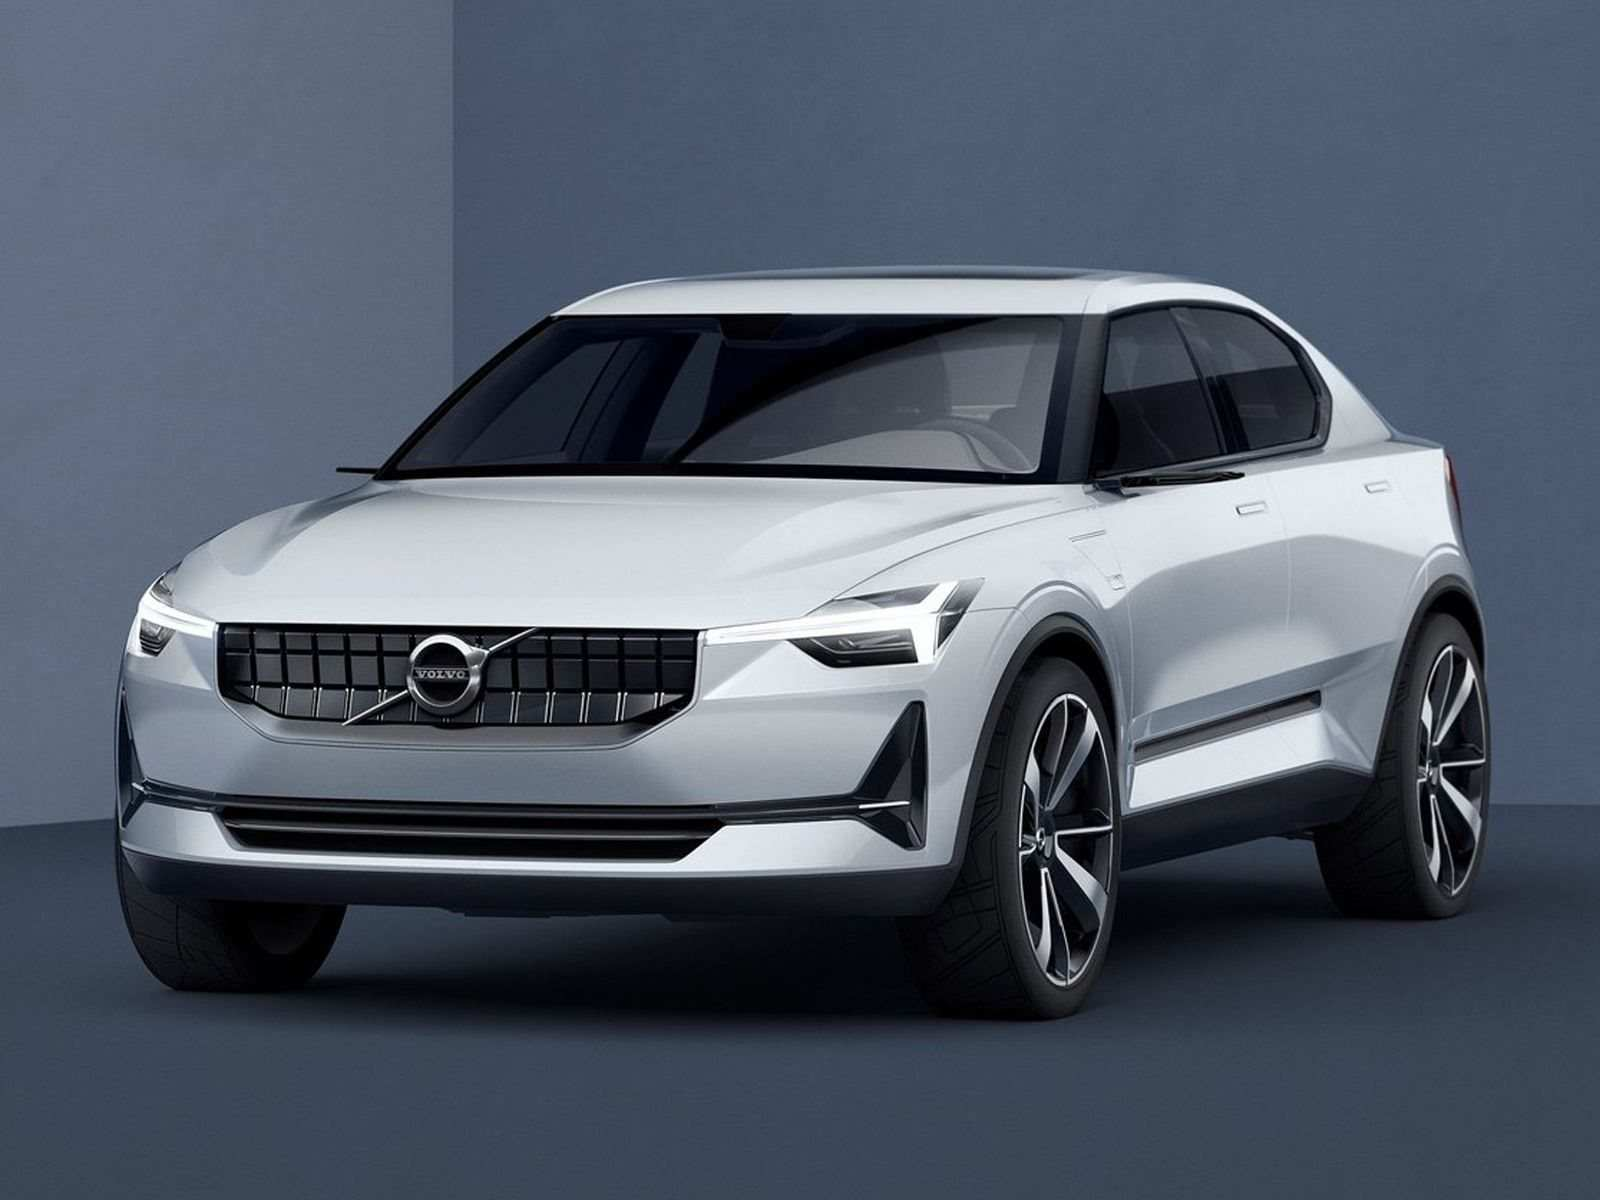 78 Concept of Vw 2019 Ev Research New with Vw 2019 Ev